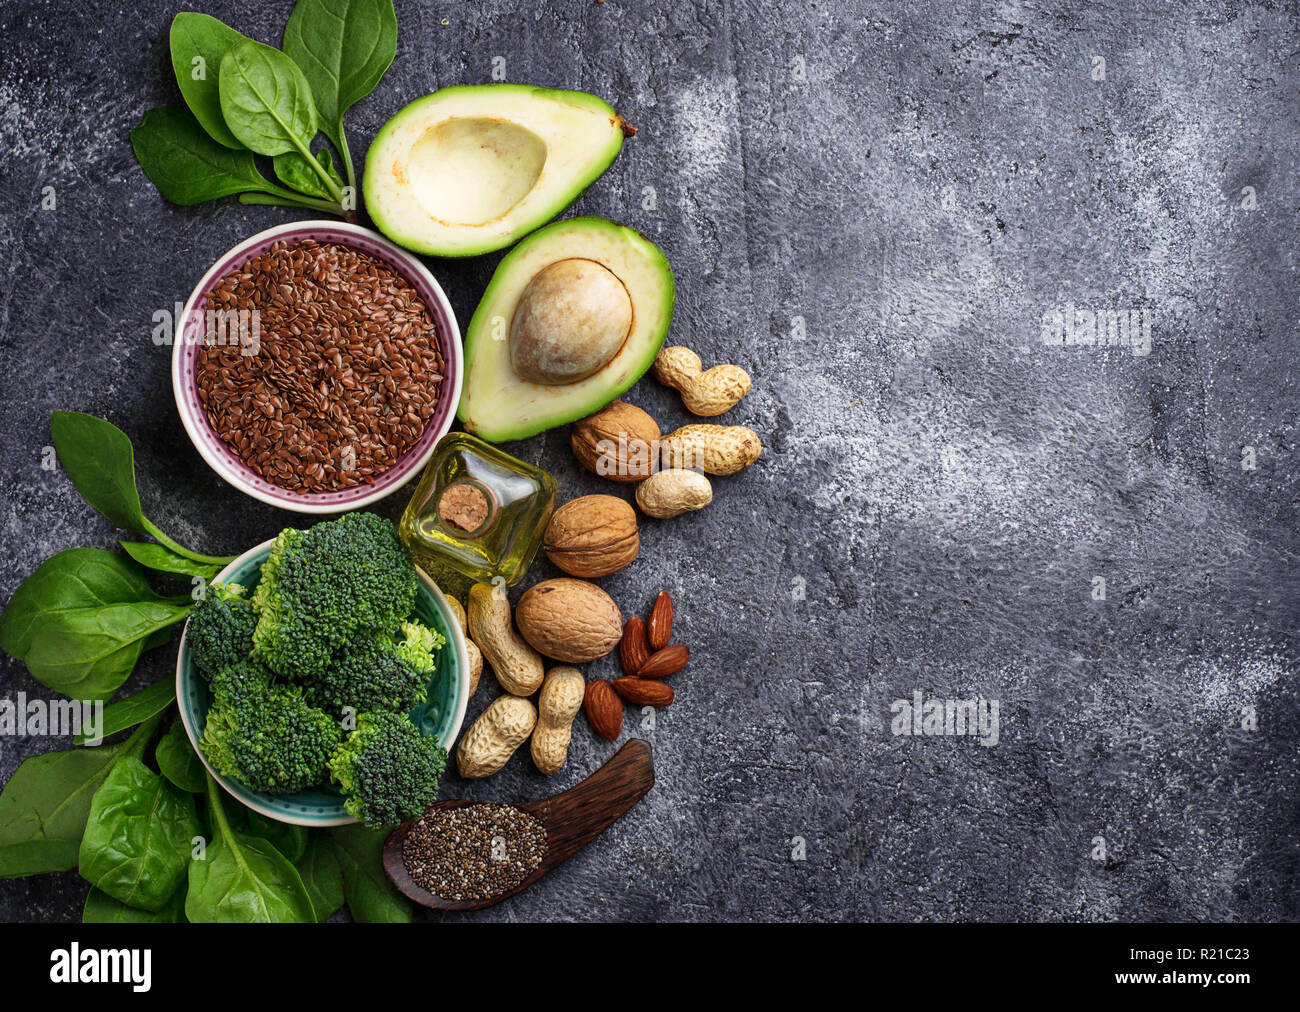 Concept of healthy food. Vegan fat sources  - Stock Image